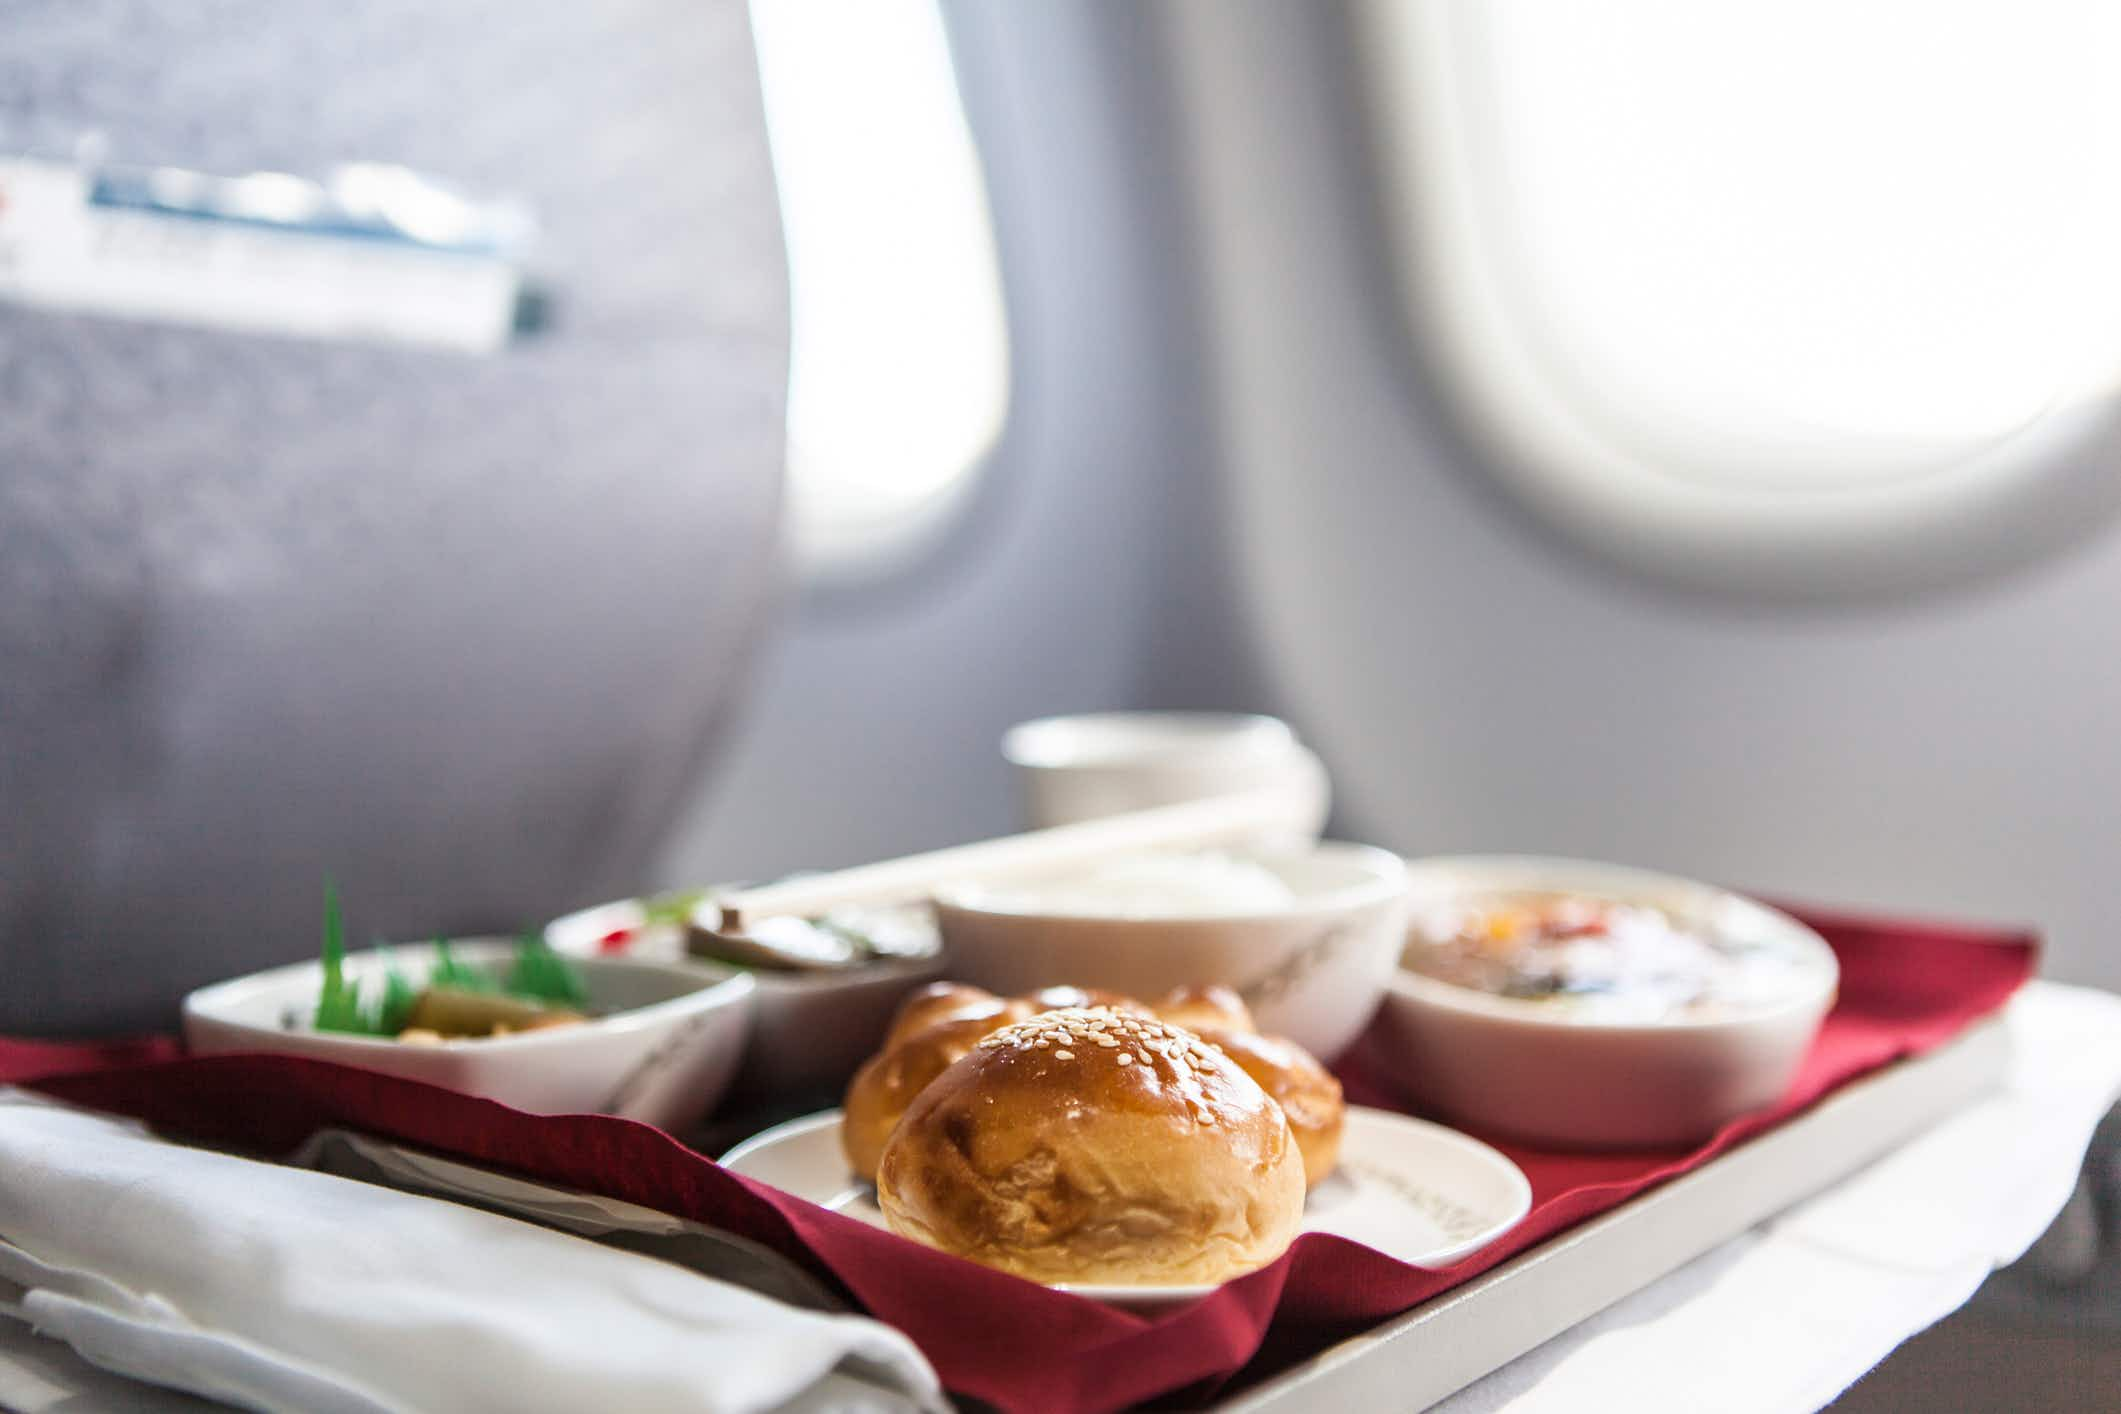 British Airways is bringing back a second meal on long-haul flights